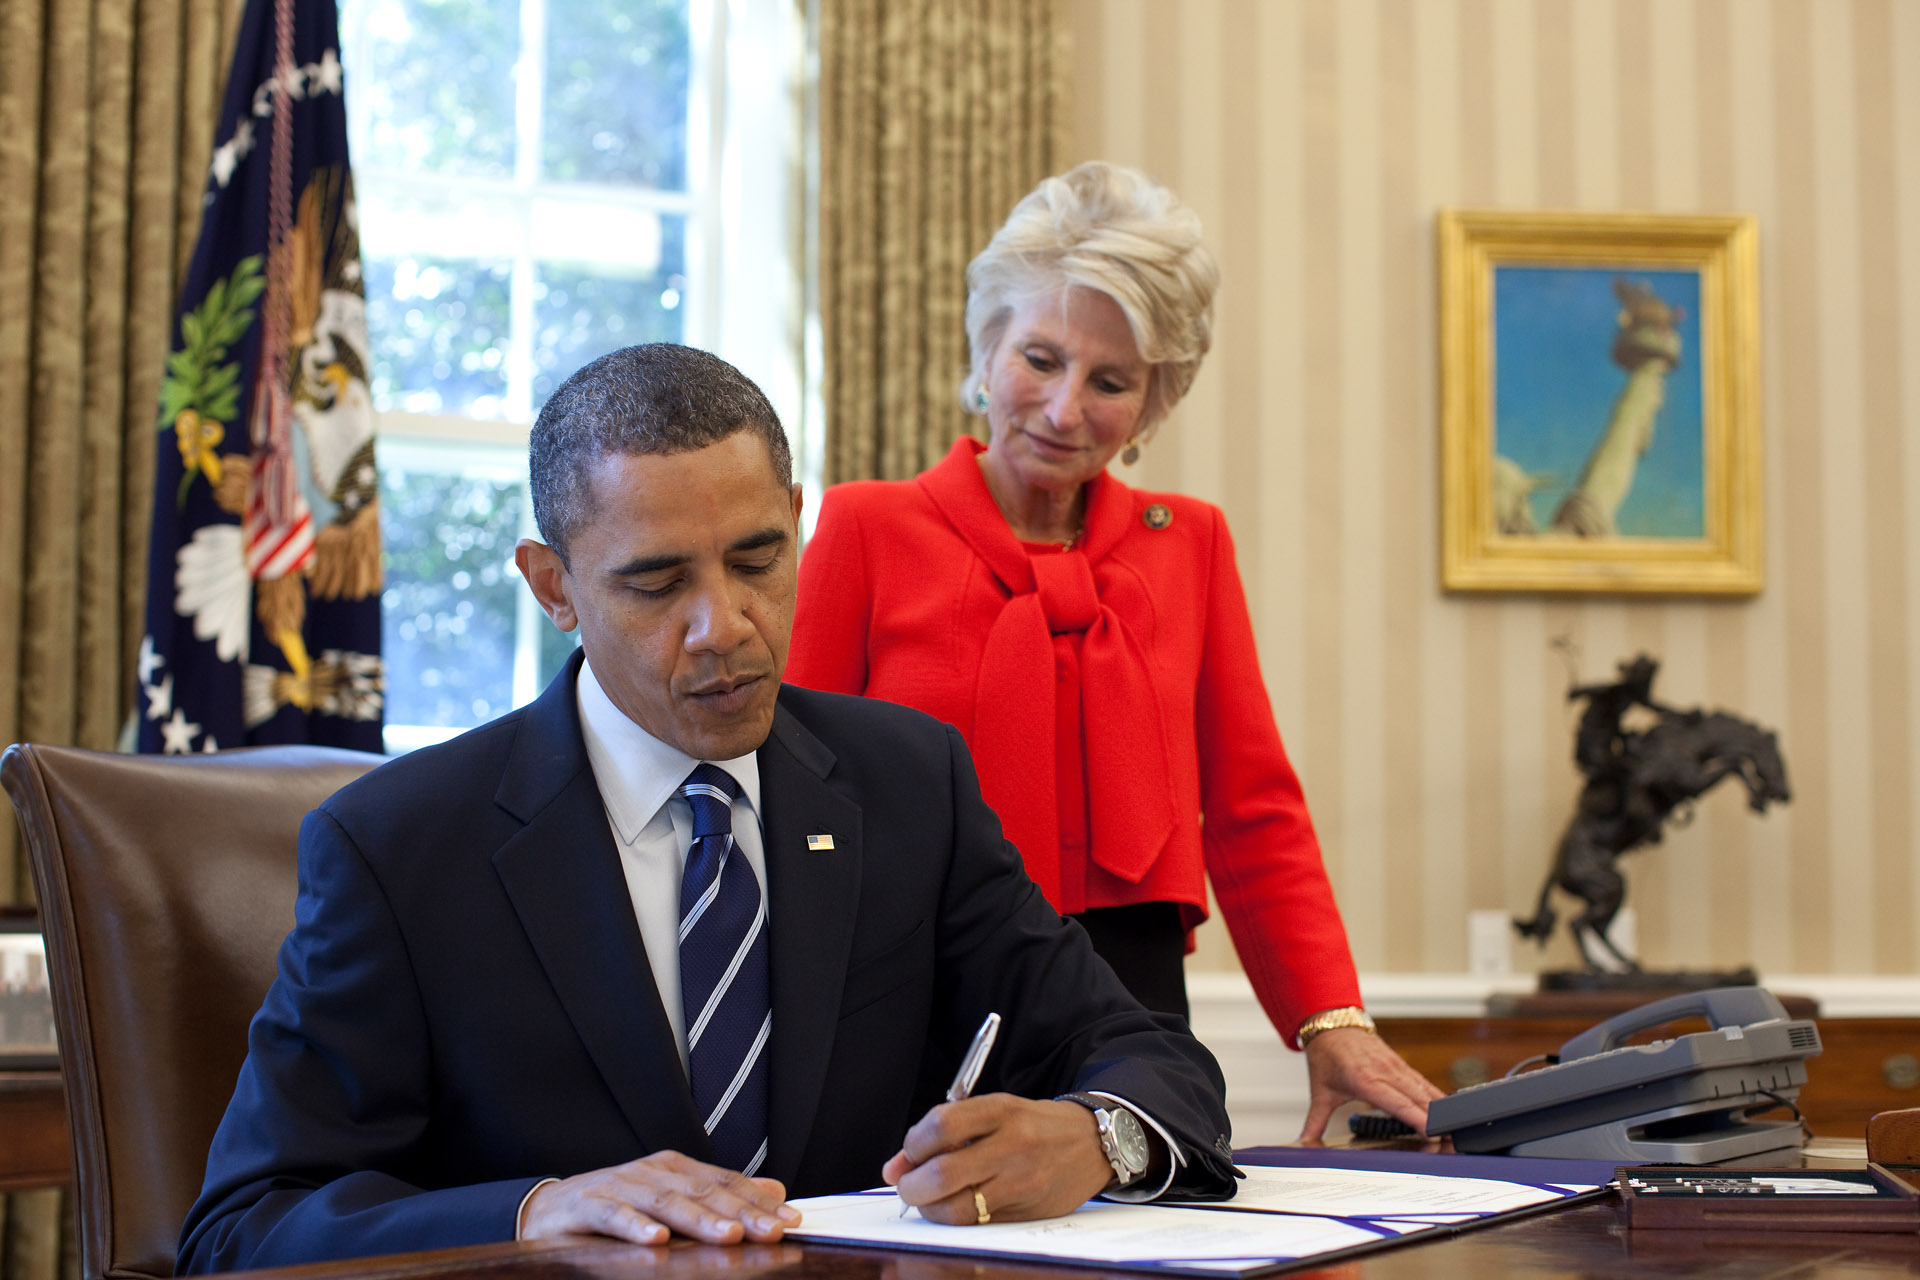 President Barack Obama signs the Reducing Over Classification Bill